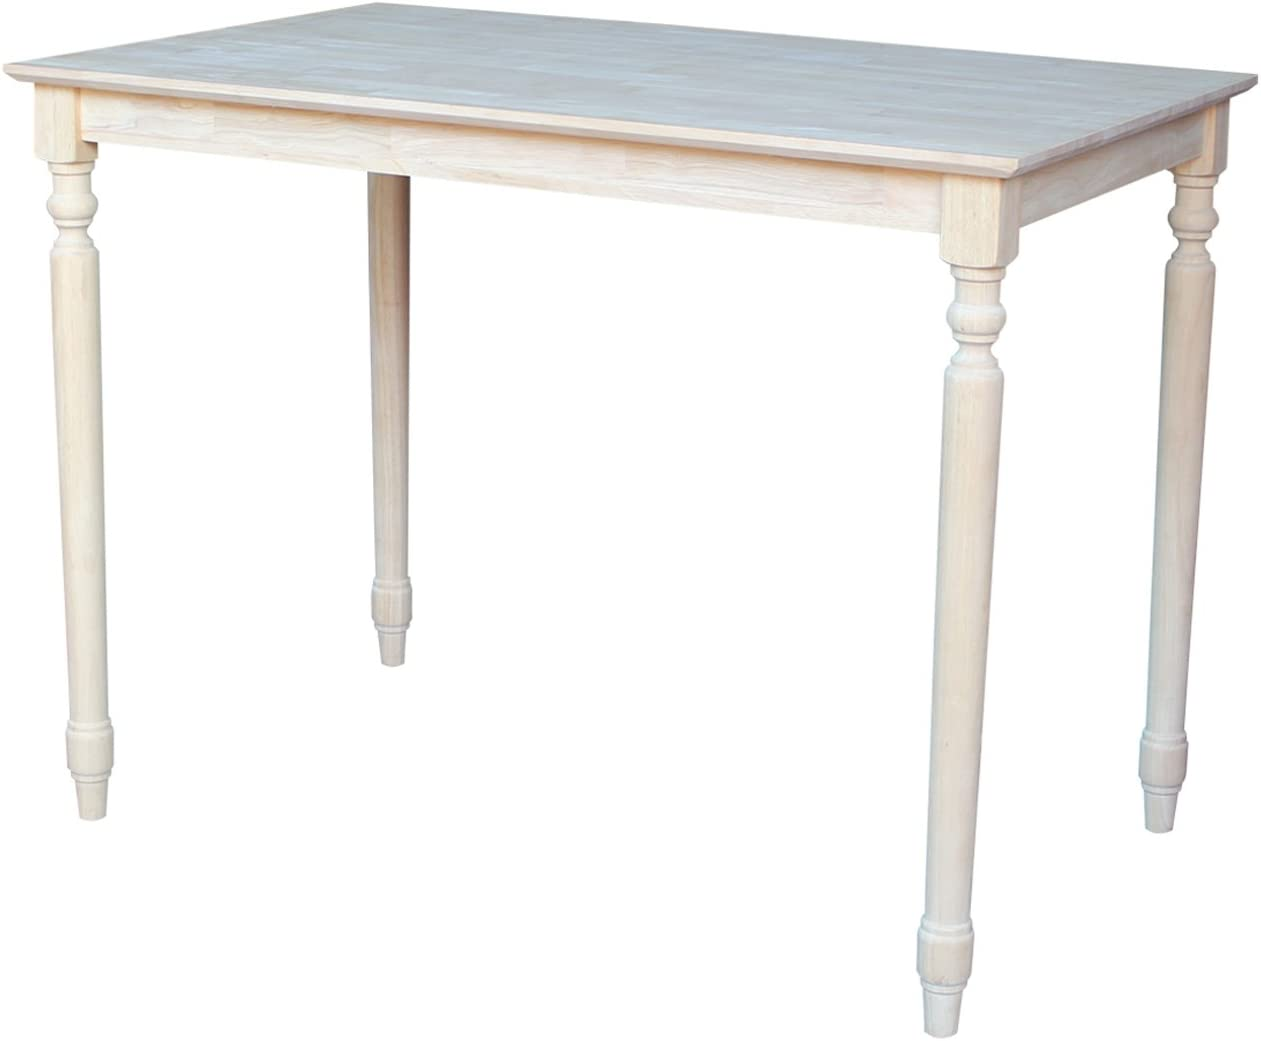 International Concepts Table Top Solid with Wood Counter Height Turned Legs, 30 by 48-Inch, Unfinished